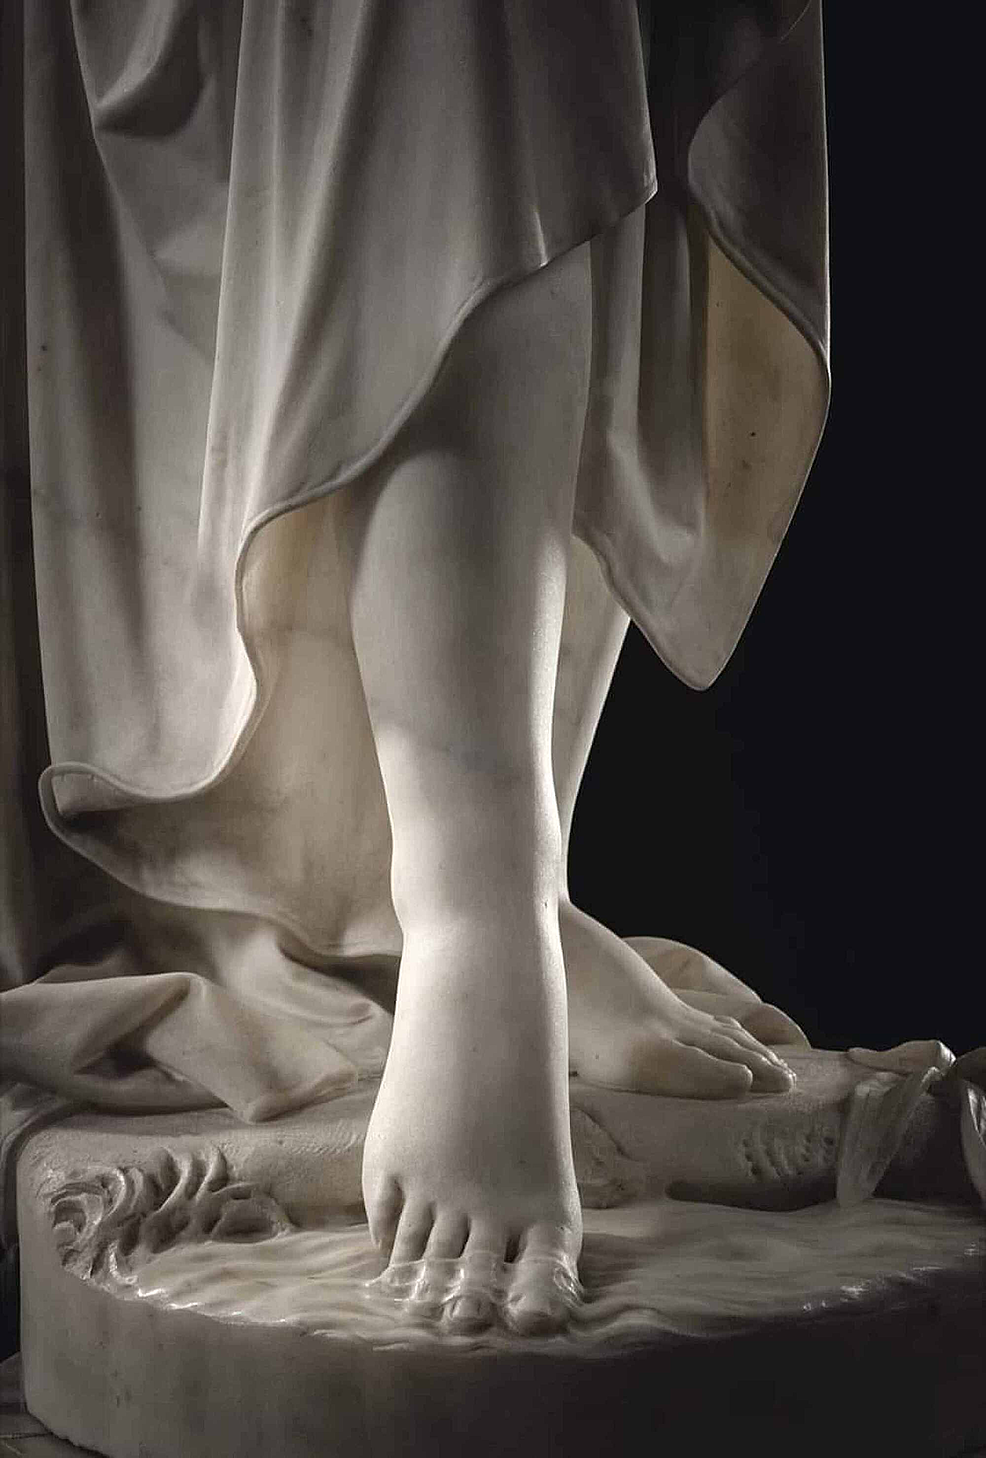 Image-of-Nymph-statue-(detail),-Giovanni-Battista-Lombardi,-1823--1880.-Palazzo-Faschi,-Brescia.-The-detail-ideally-highlights-the-solid-and-liquid-fascia.